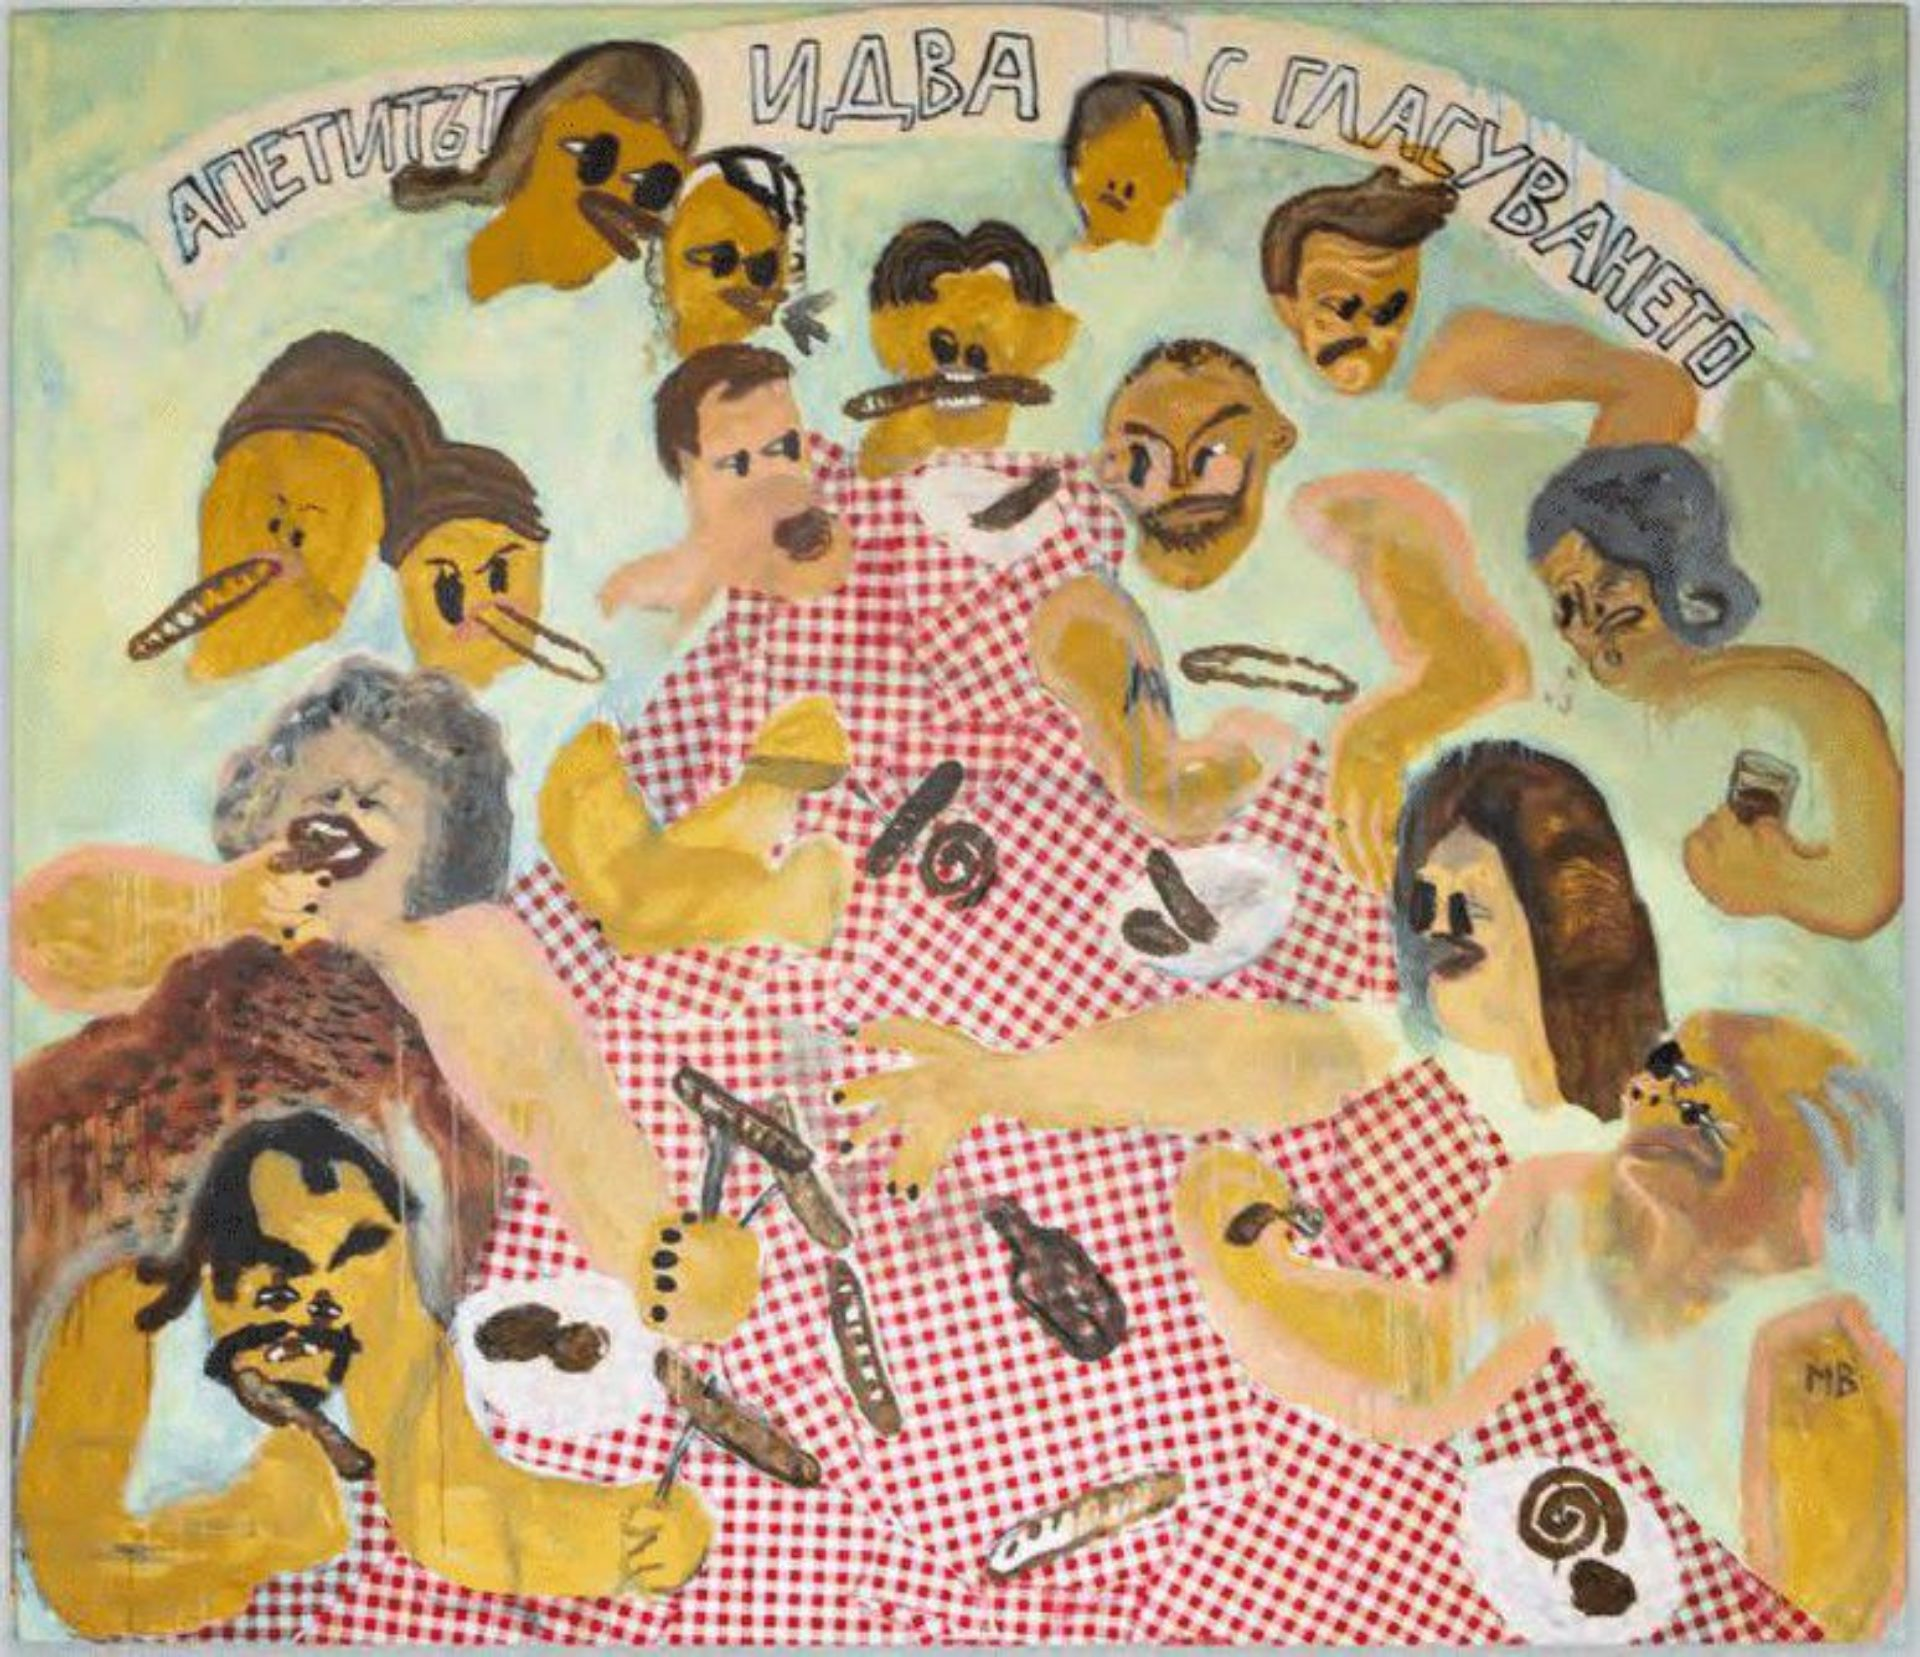 Martina Vacheva, The Appetite comes with the Voting, 2019